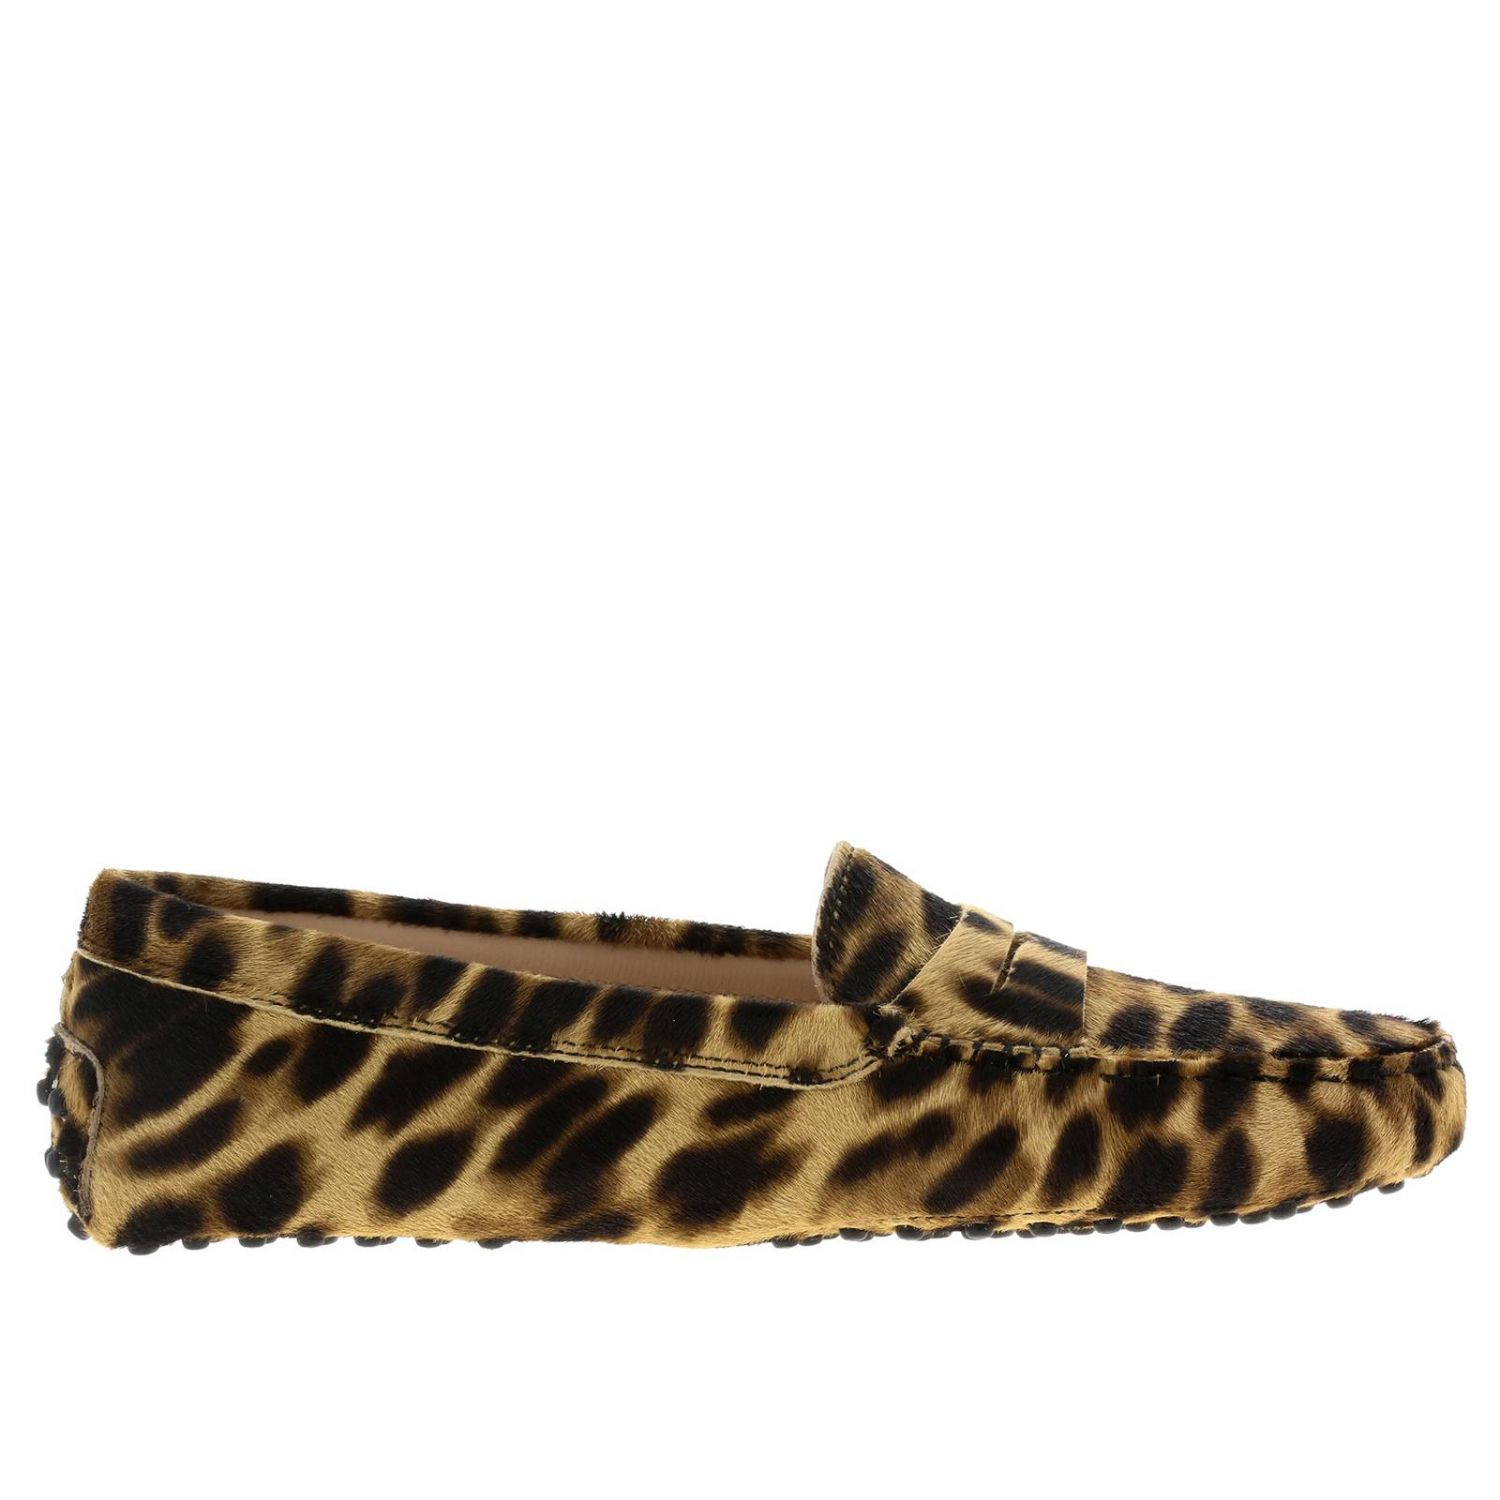 Tod's loafers in calfhair multicolor 1